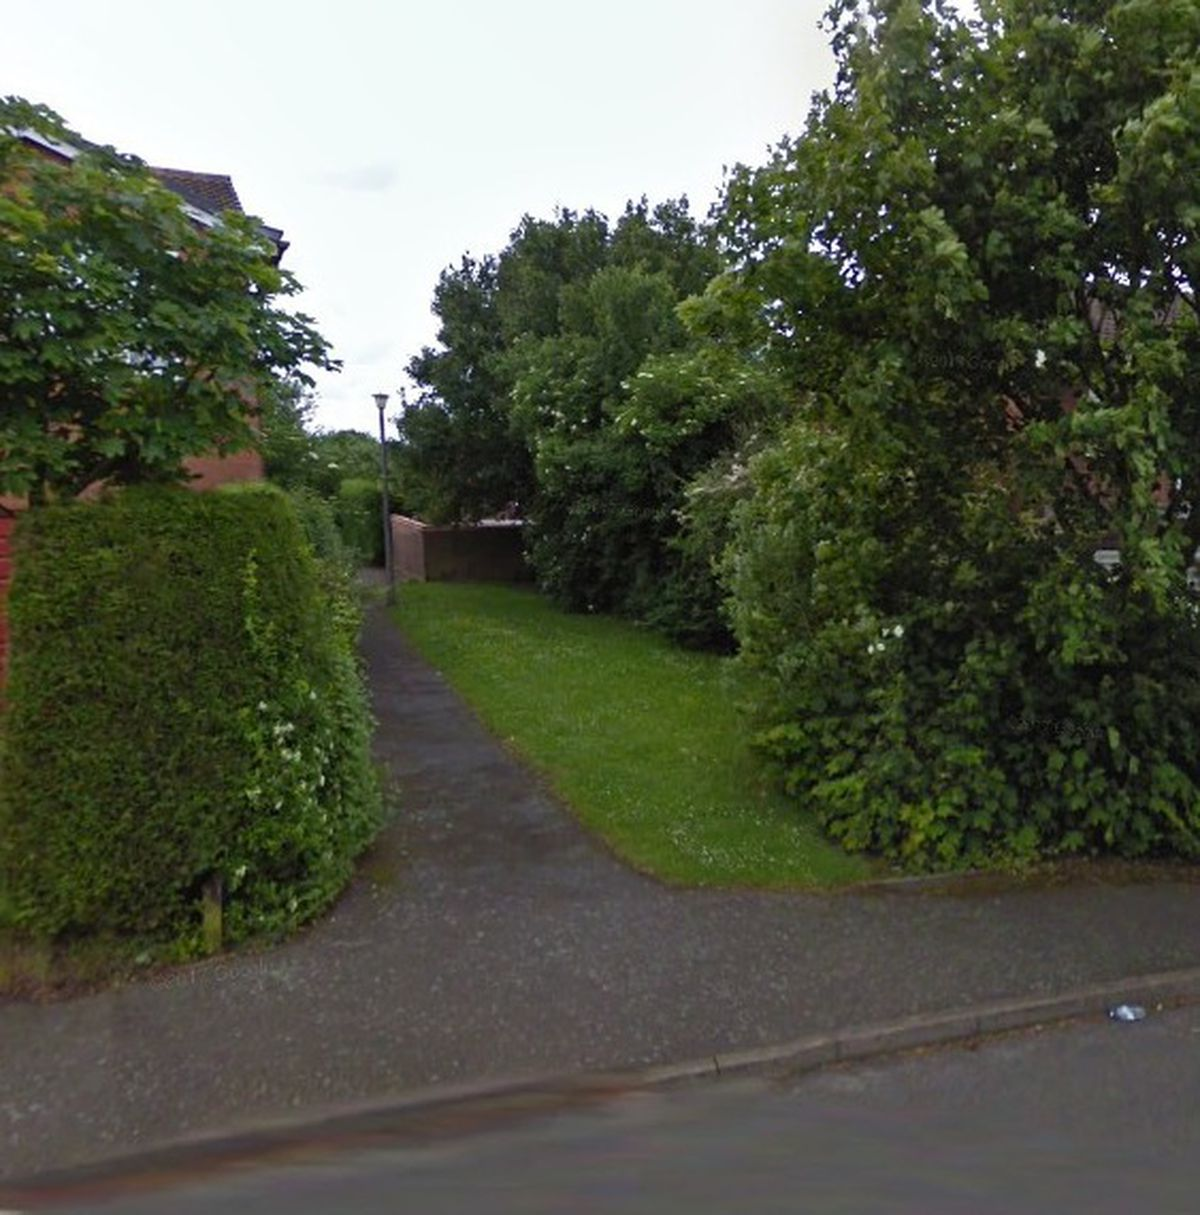 A Google Street View image from 2009 of the green space on Meadow Way Hawks Green that has become part of a private garden. The public footpath remains open